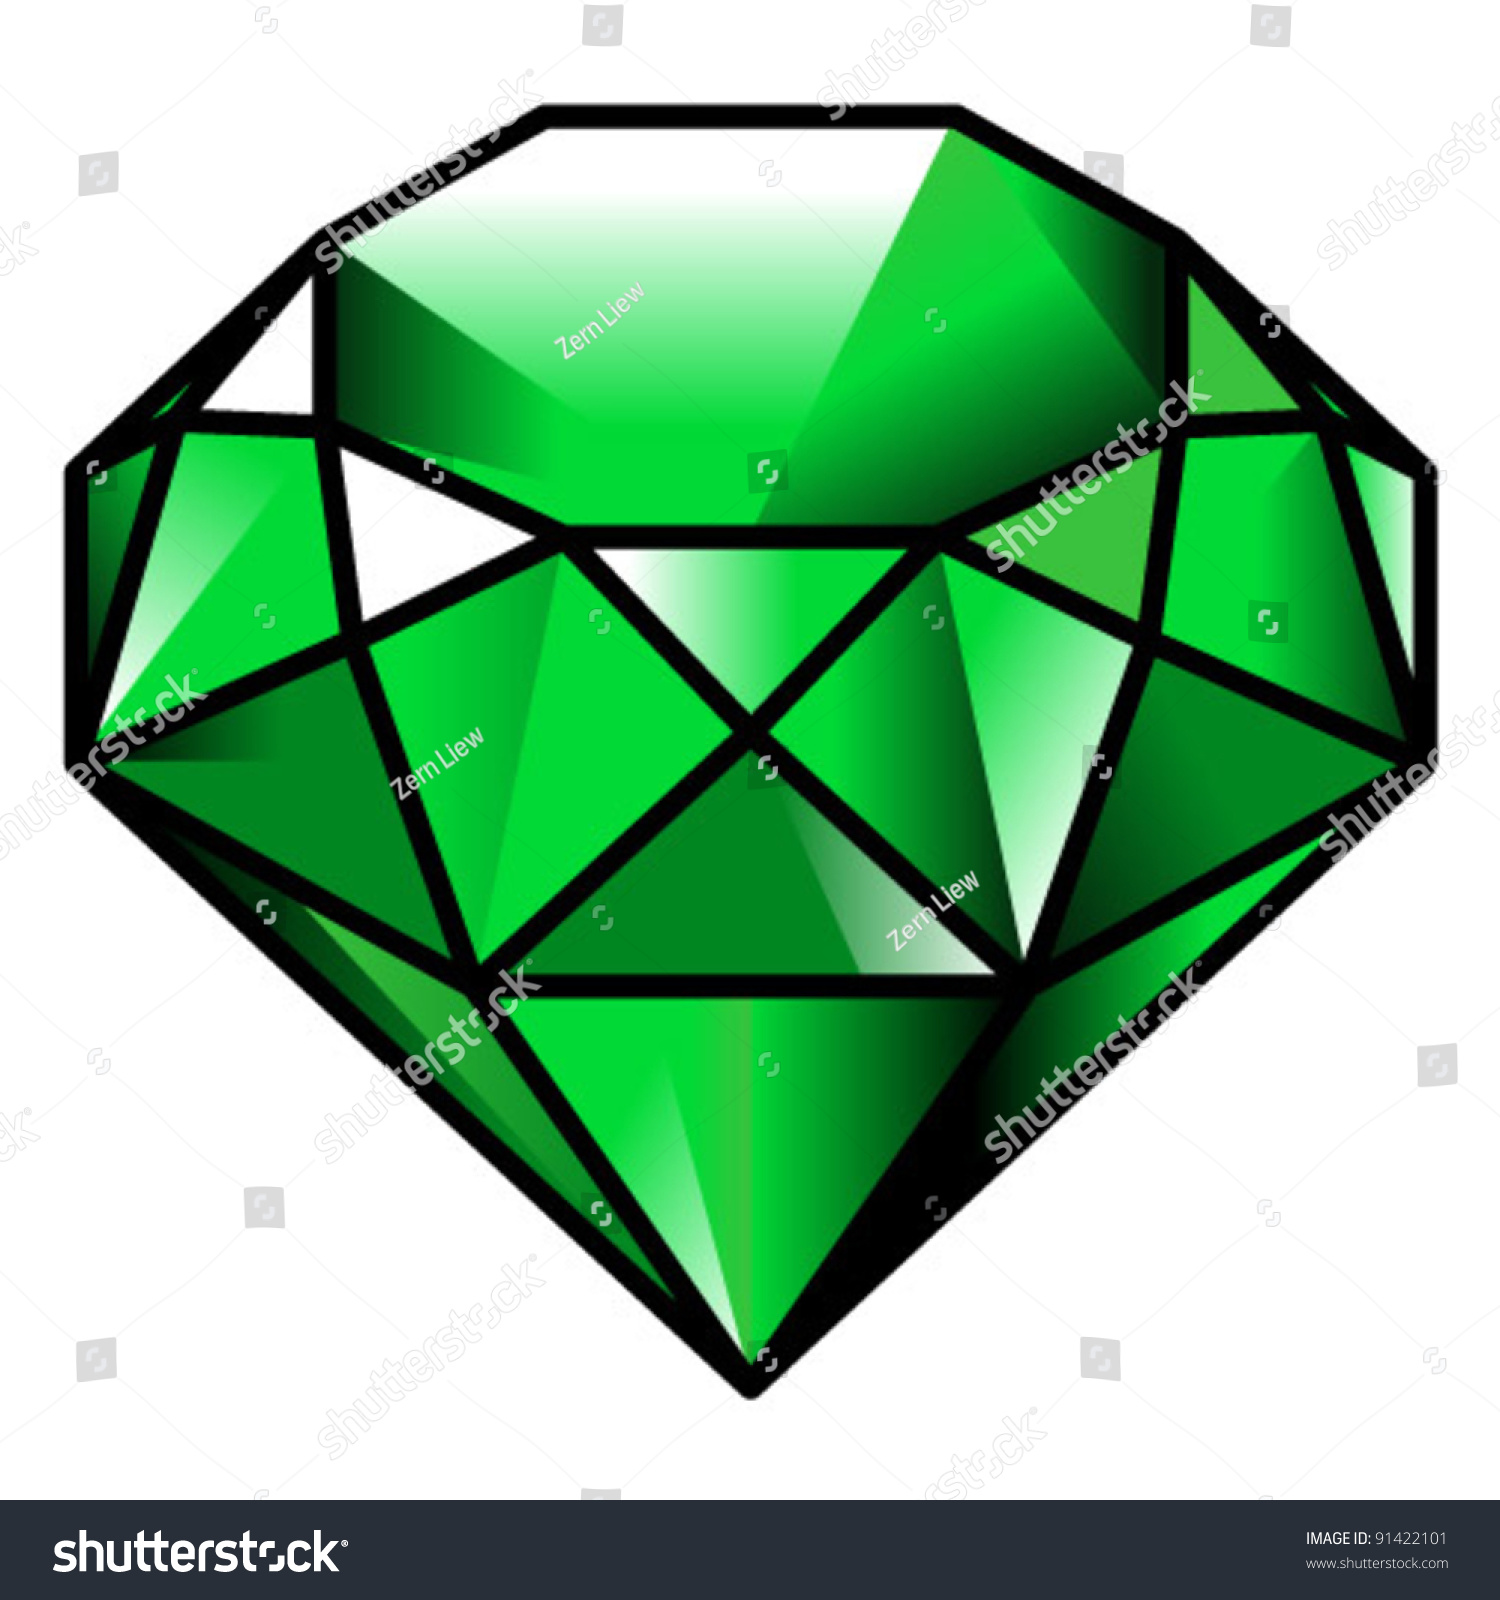 uses physical poet strengthen blue elune used to marriage fidelity colombian and balance often it crystal emerald precious gemstone the meaning can meanings s is stone